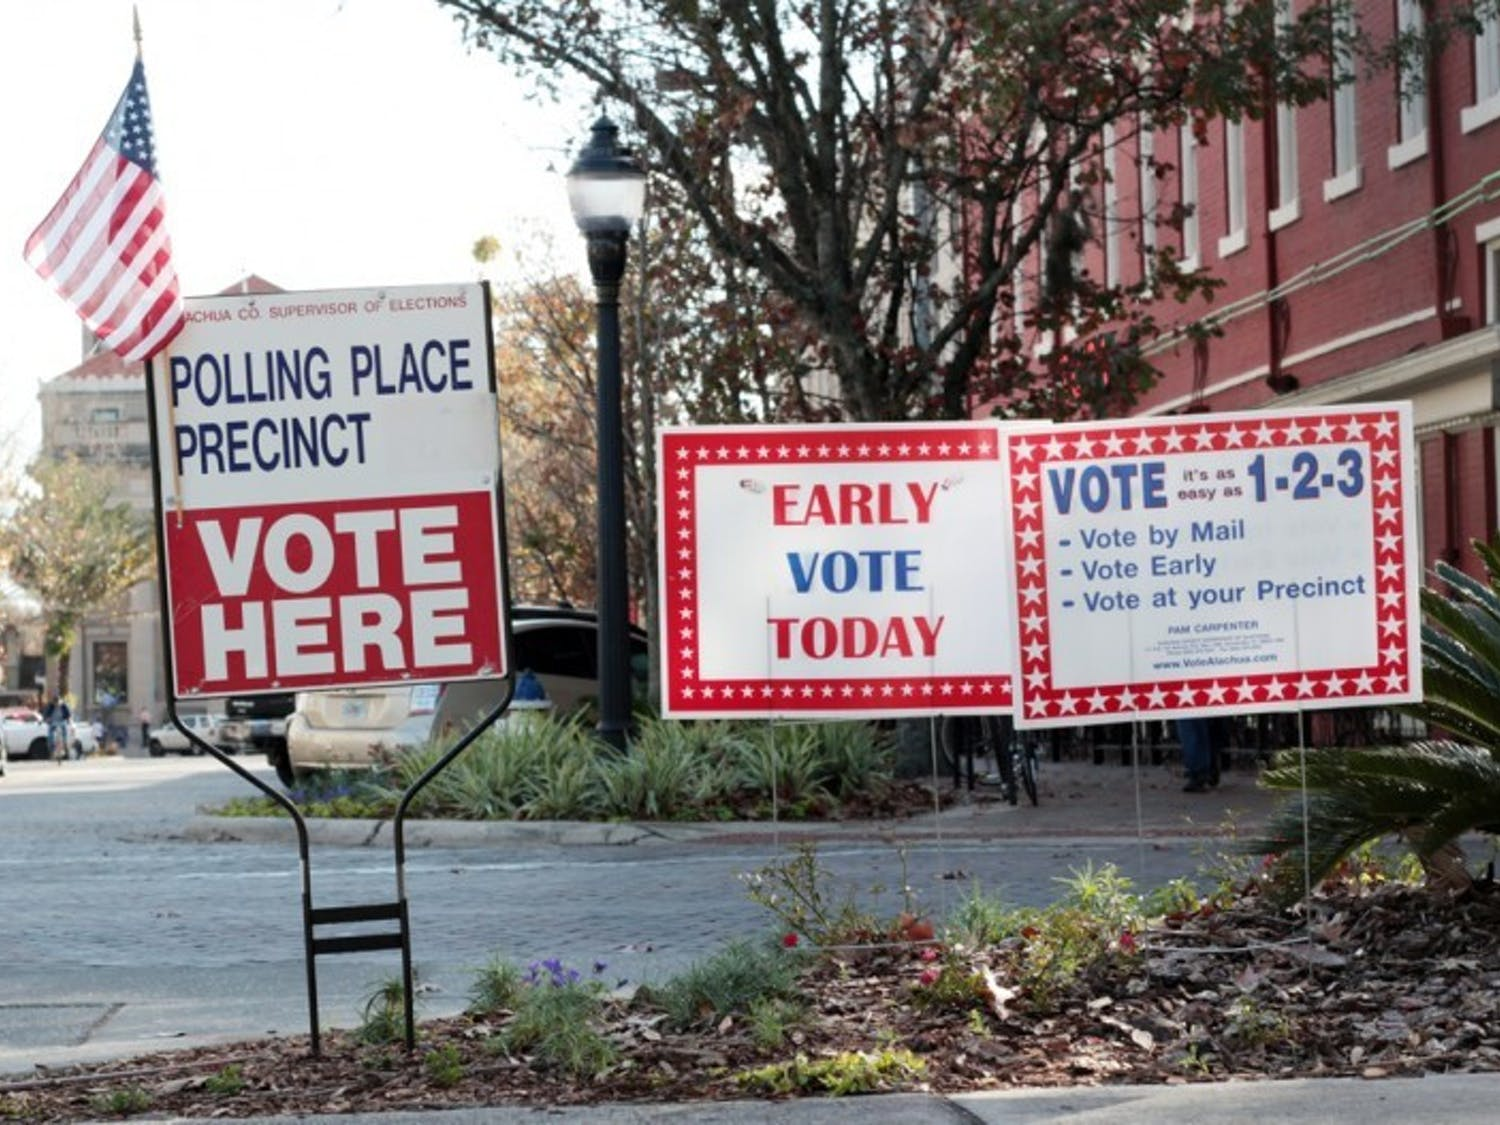 UF College Democrats is offering voters free rides to polling locations, including the Supervisor of Elections County Administration building at 12 SE First St., for the Gainesville city elections on Jan. 31.